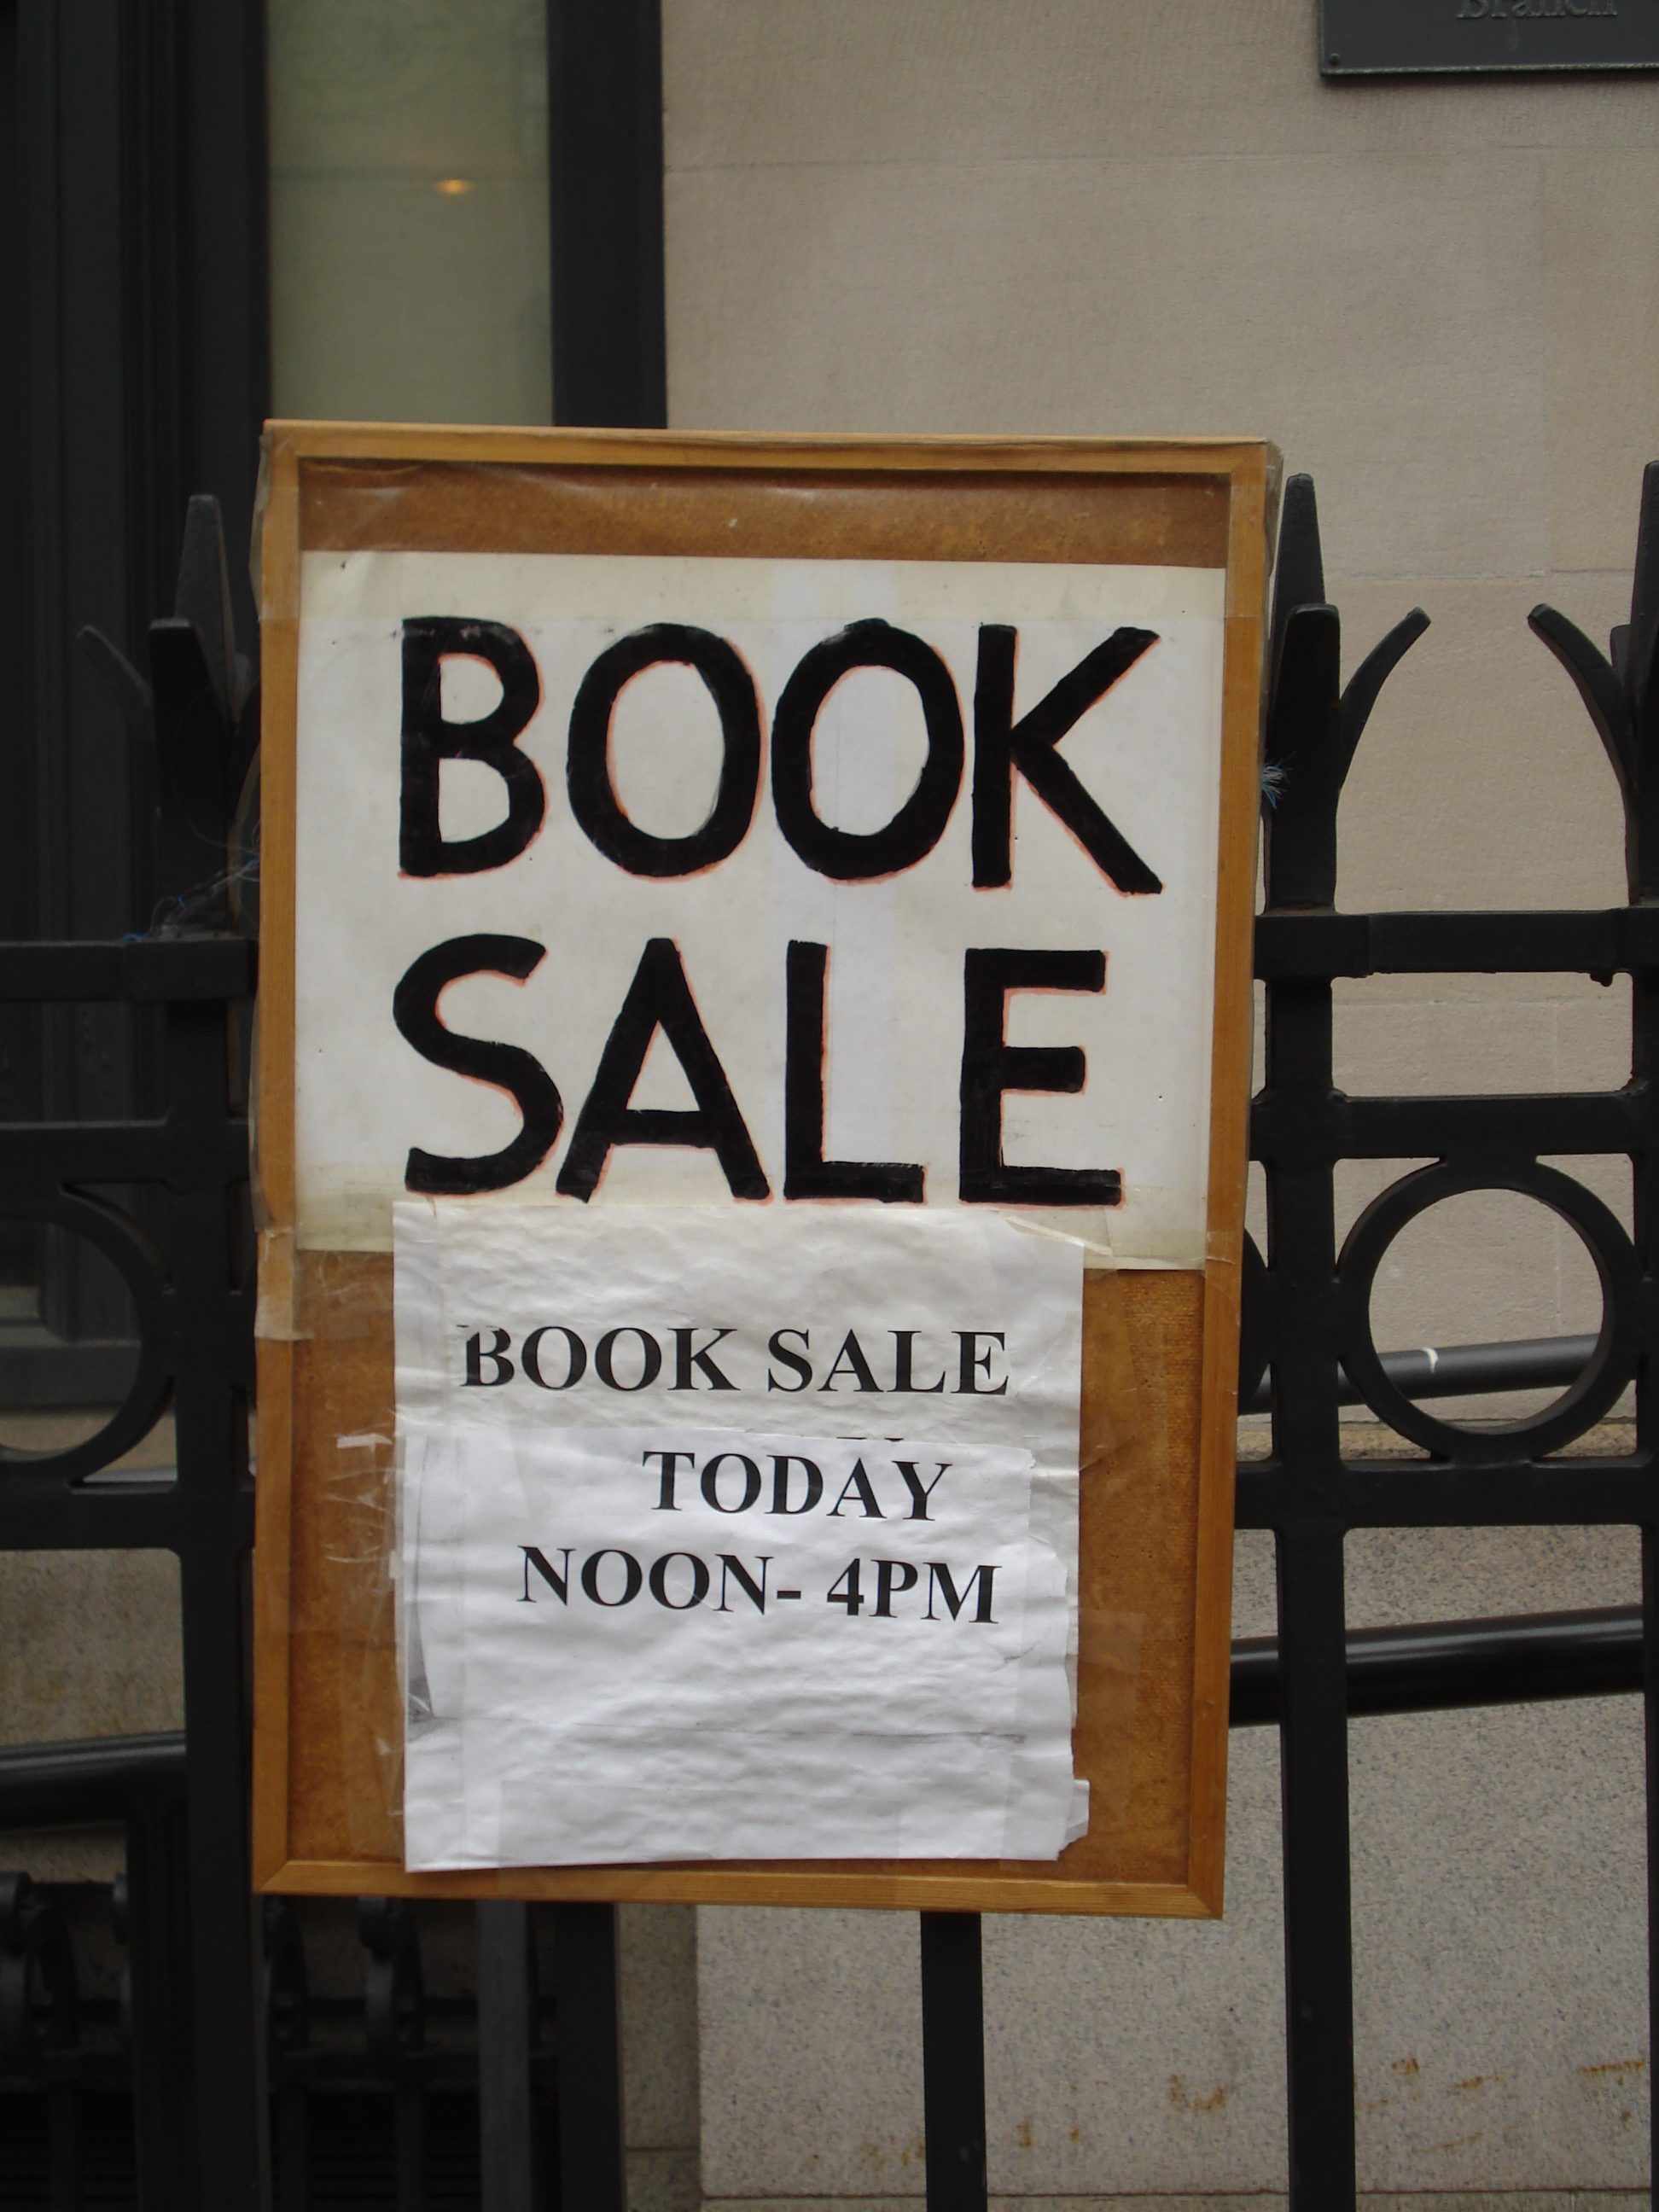 The St. Agnes Library Book Sale